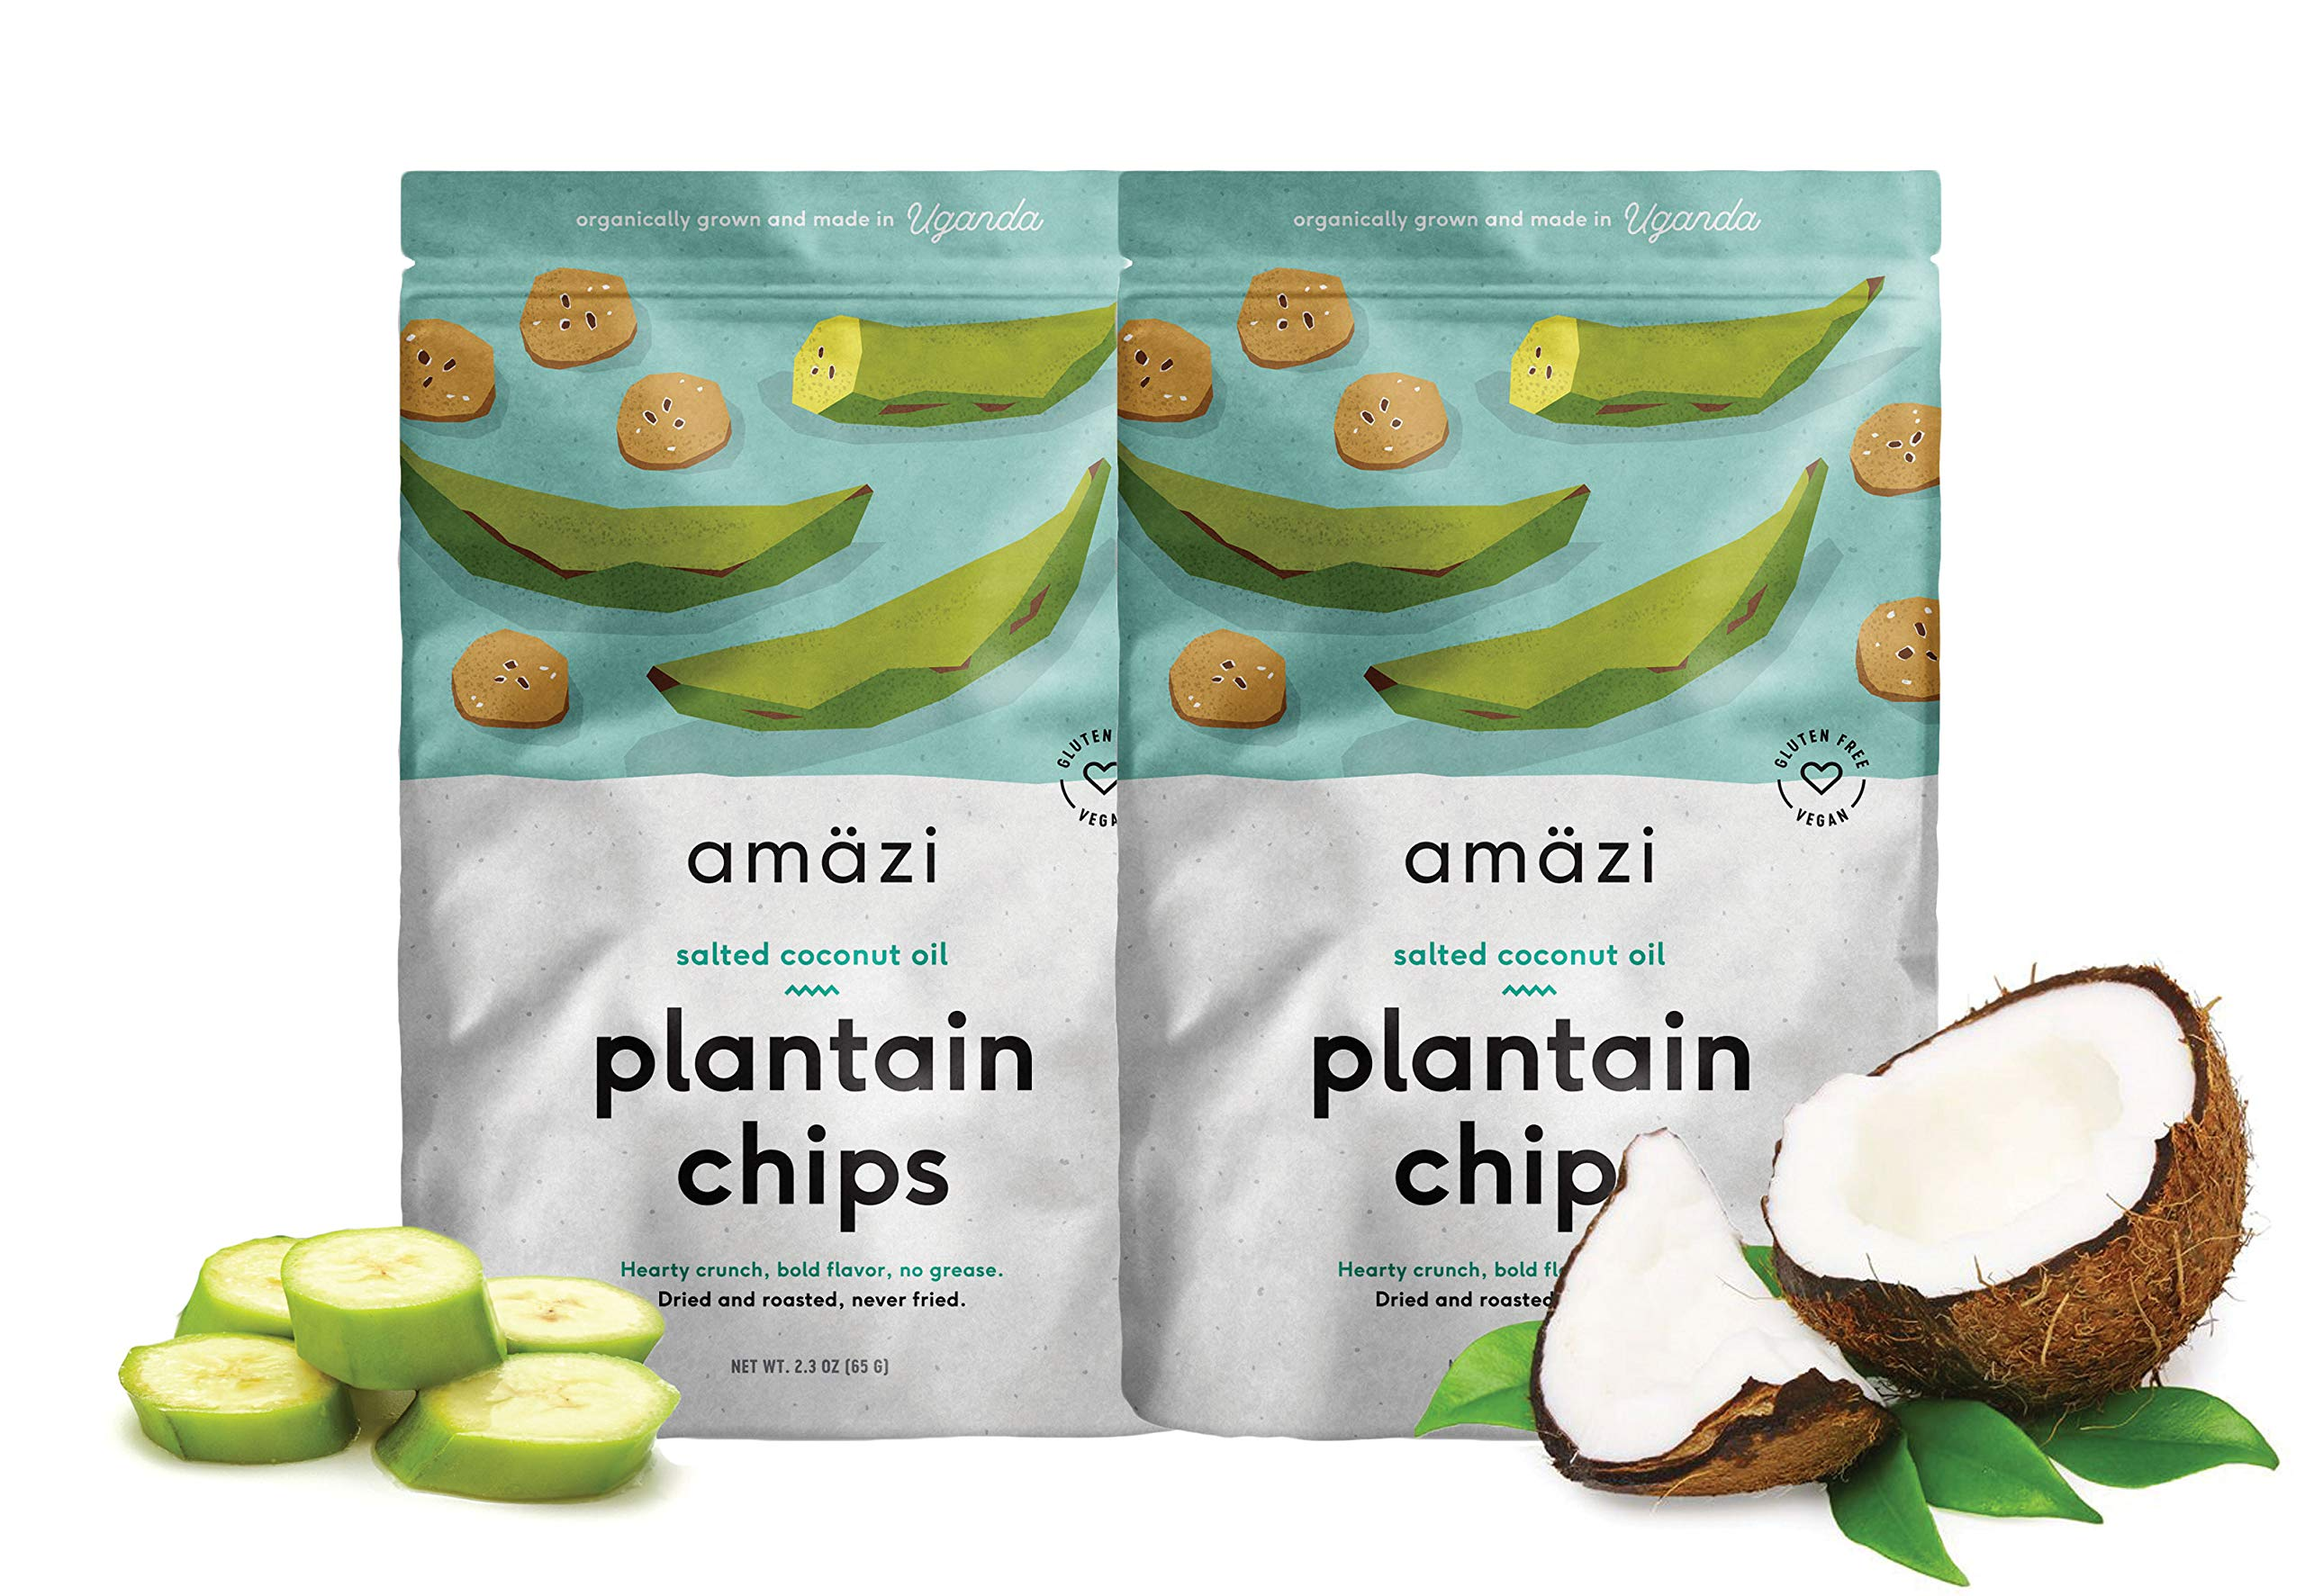 Amazi Dried & Roasted Plantain Chips - Salted Coconut Oil Flavor - Organically Grown, Fair Trade, Gluten-Free, Certified Vegan Chips - Paleo Friendly Healthy Snacks - Uses Heart-Healthy Fats - 2 Pack